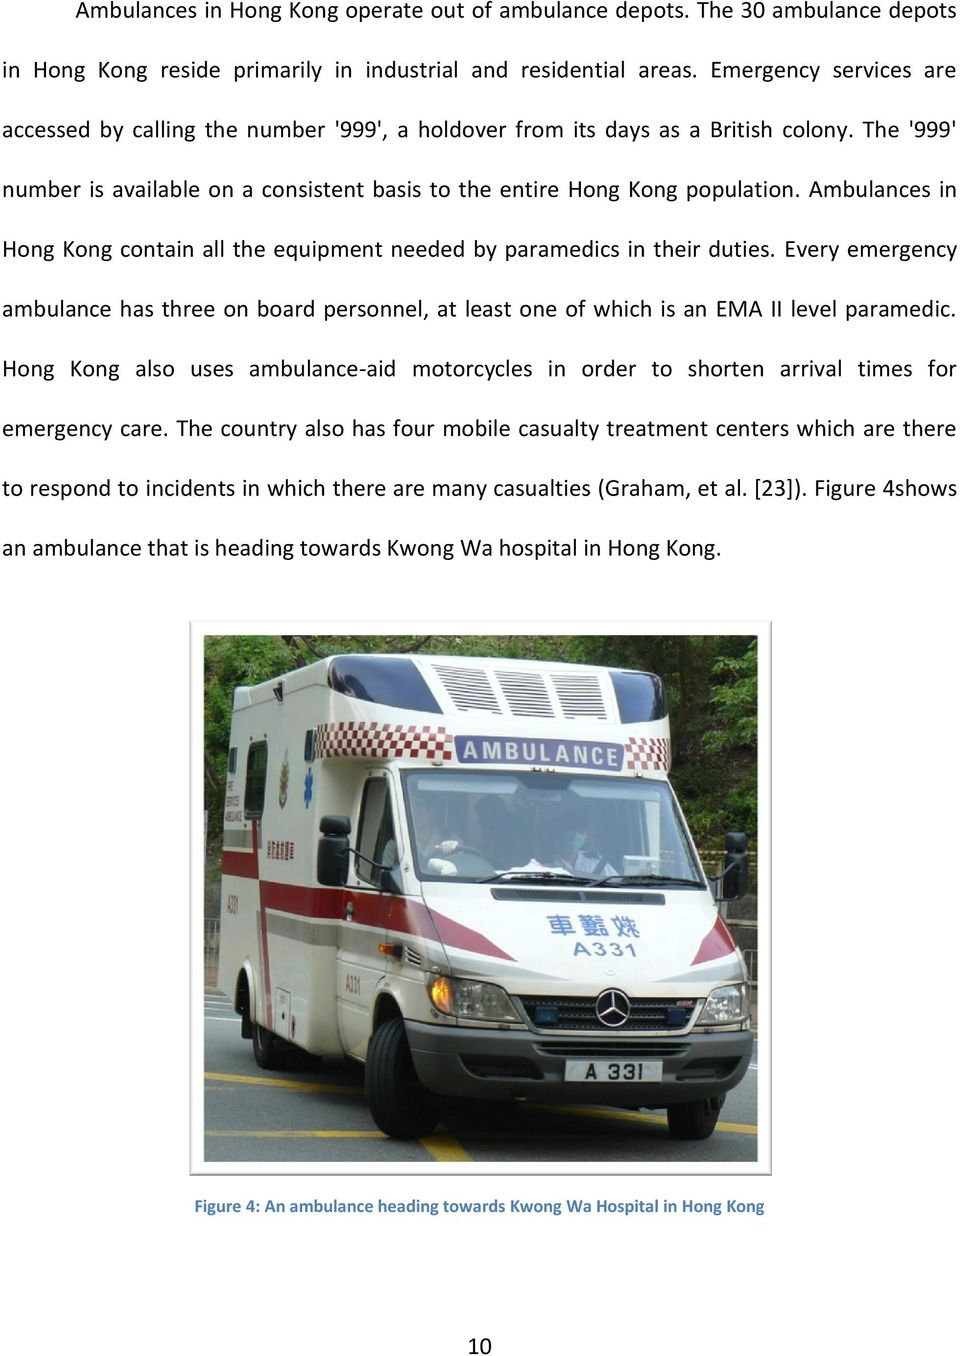 Ambulances in Hong Kong contain all the equipment needed by paramedics in their duties. Every emergency ambulance has three on board personnel, at least one of which is an EMA II level paramedic.